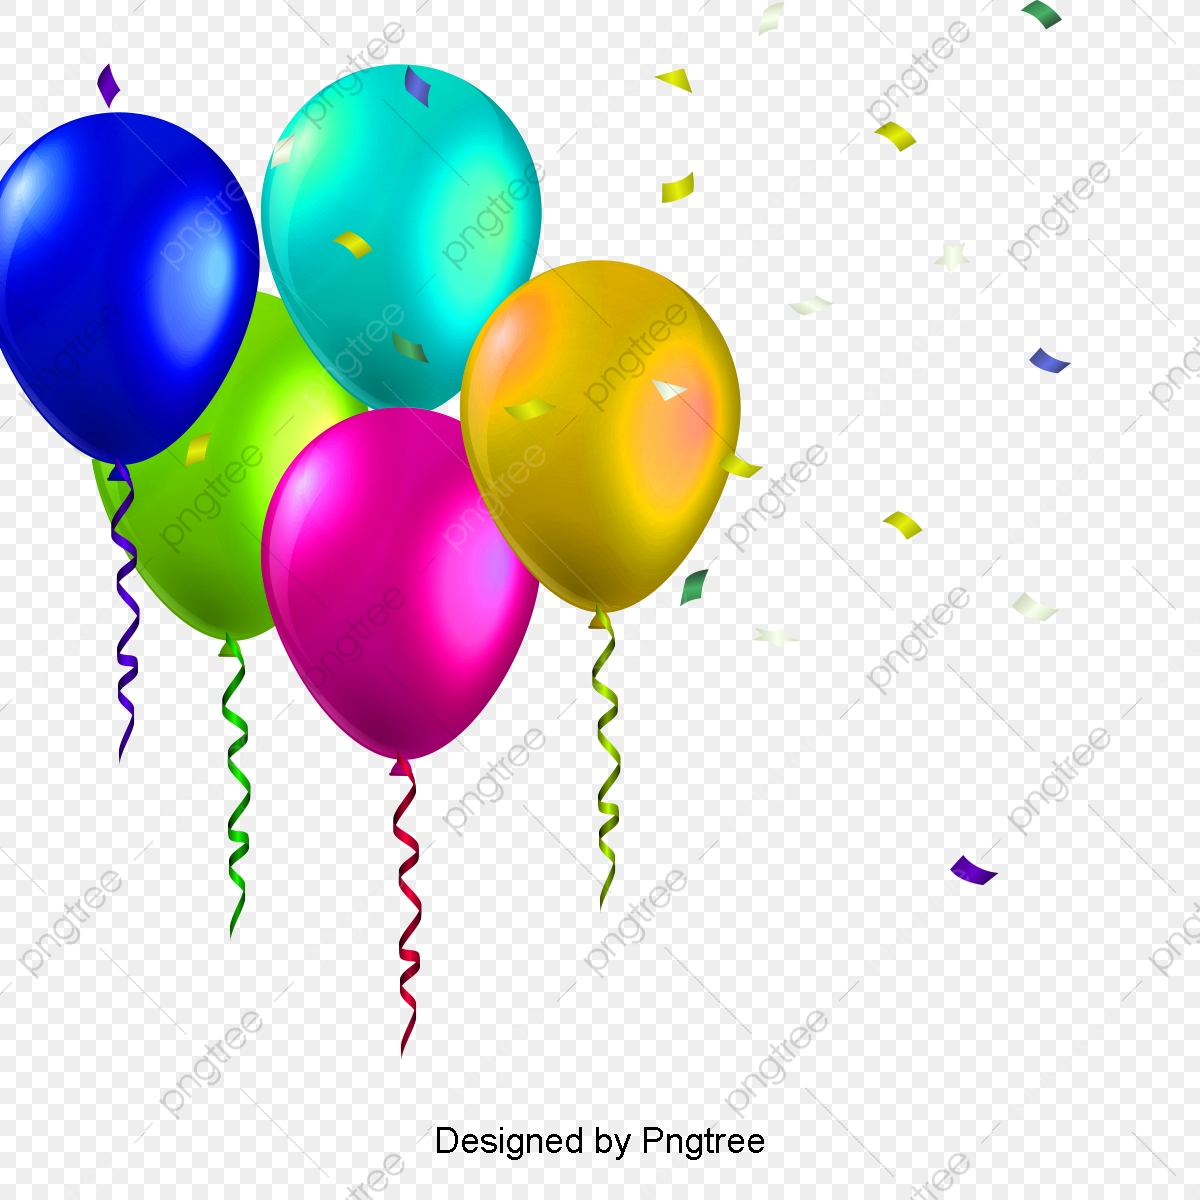 Commercial Use Resource Upgrade To Premium Plan And Get License AuthorizationUpgradeNow Birthday Balloons